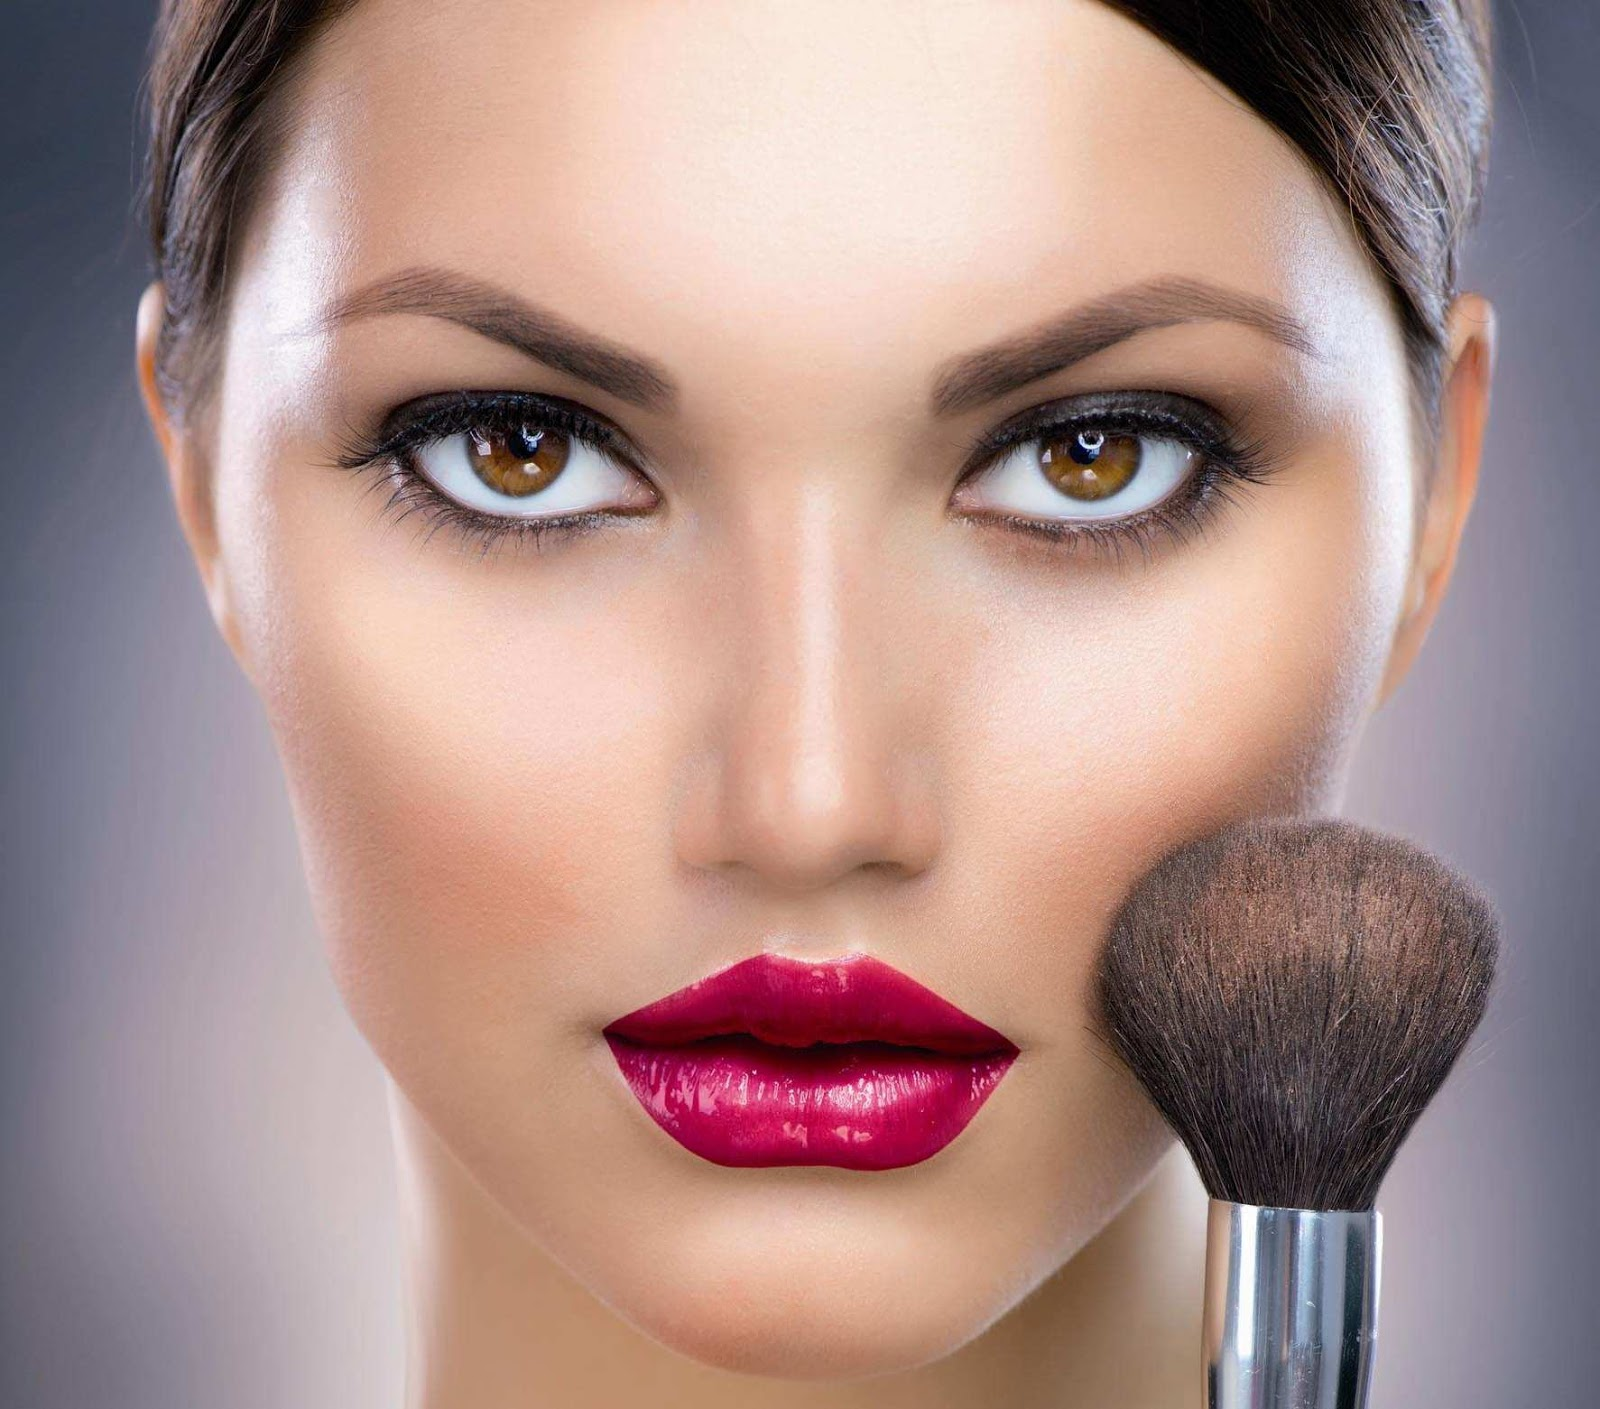 Find great deals on eBay for maquillaje. Shop with confidence.